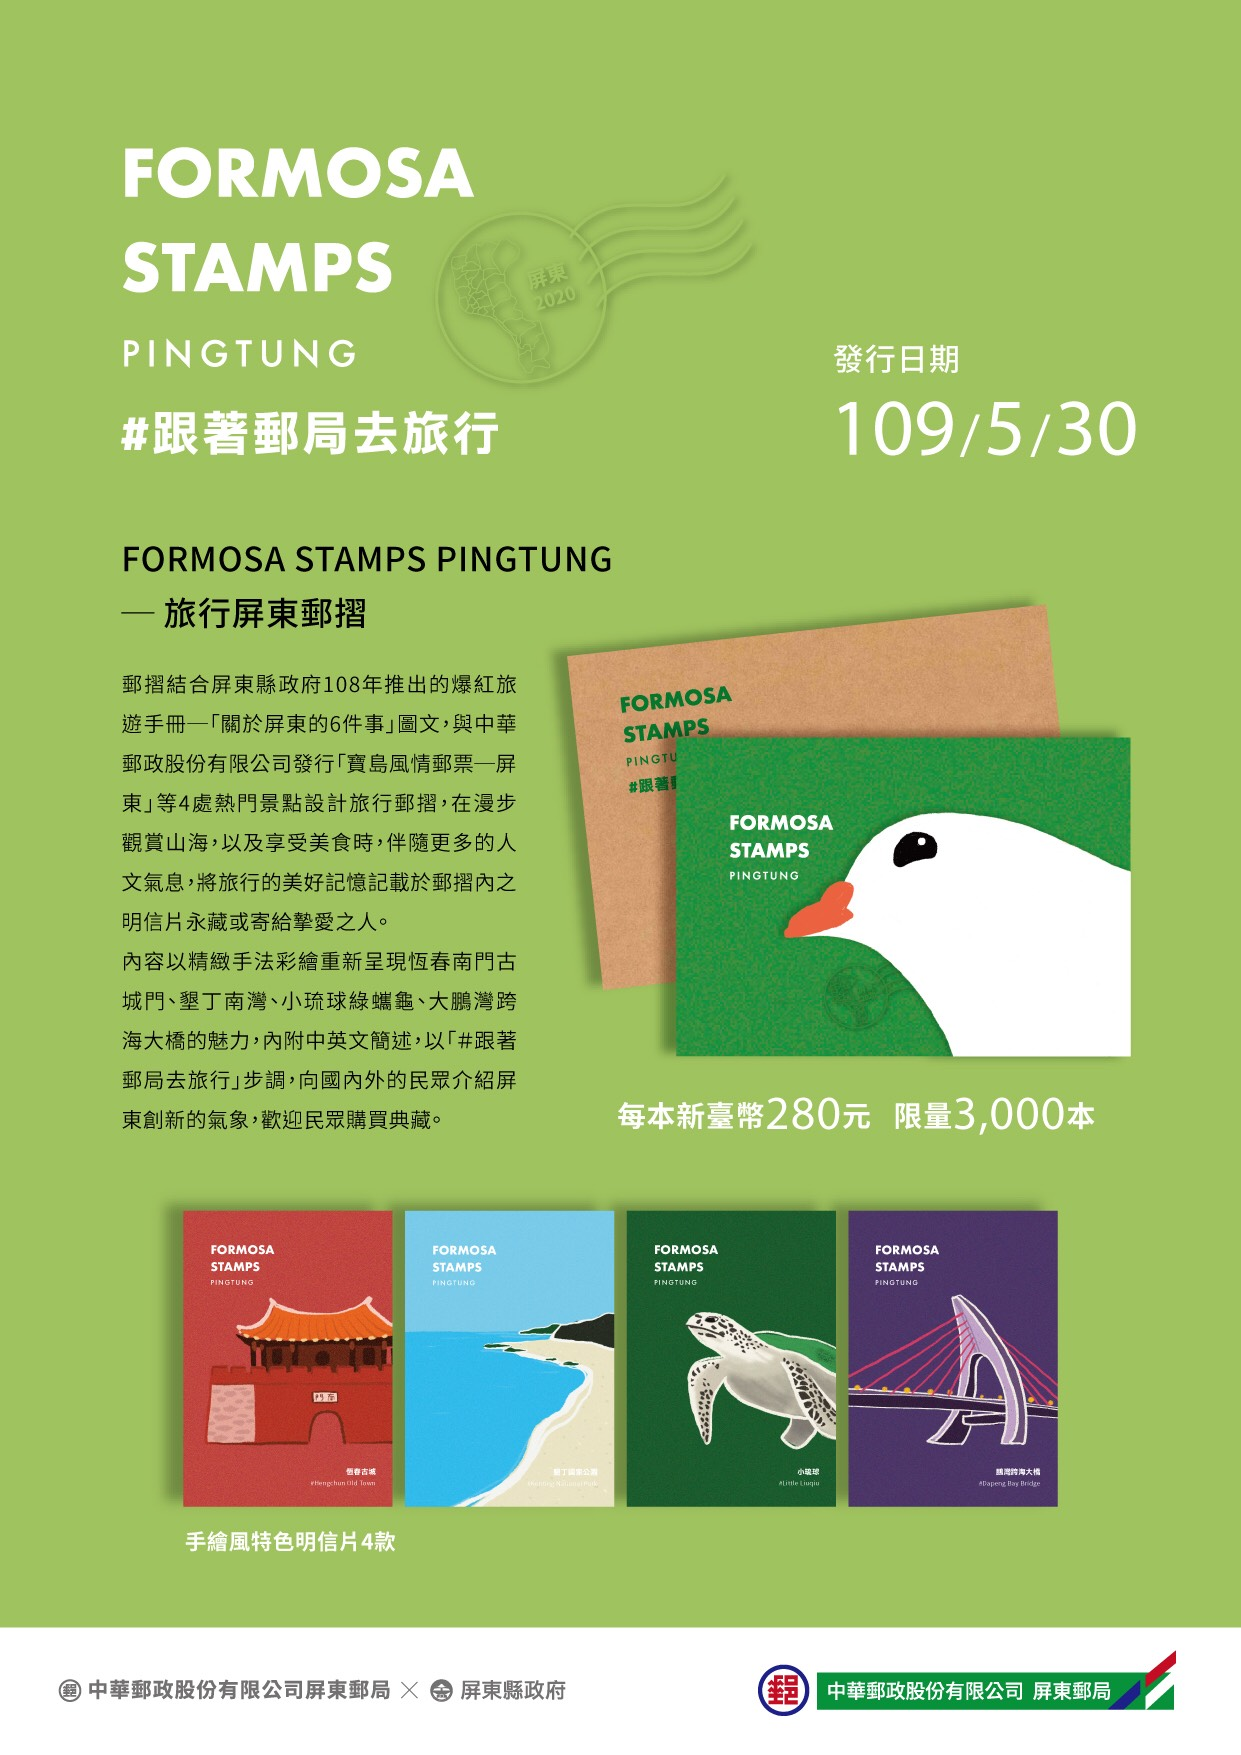 「FORMOSA STAMPS PINGTUNG─旅行屏東郵摺」發行預告